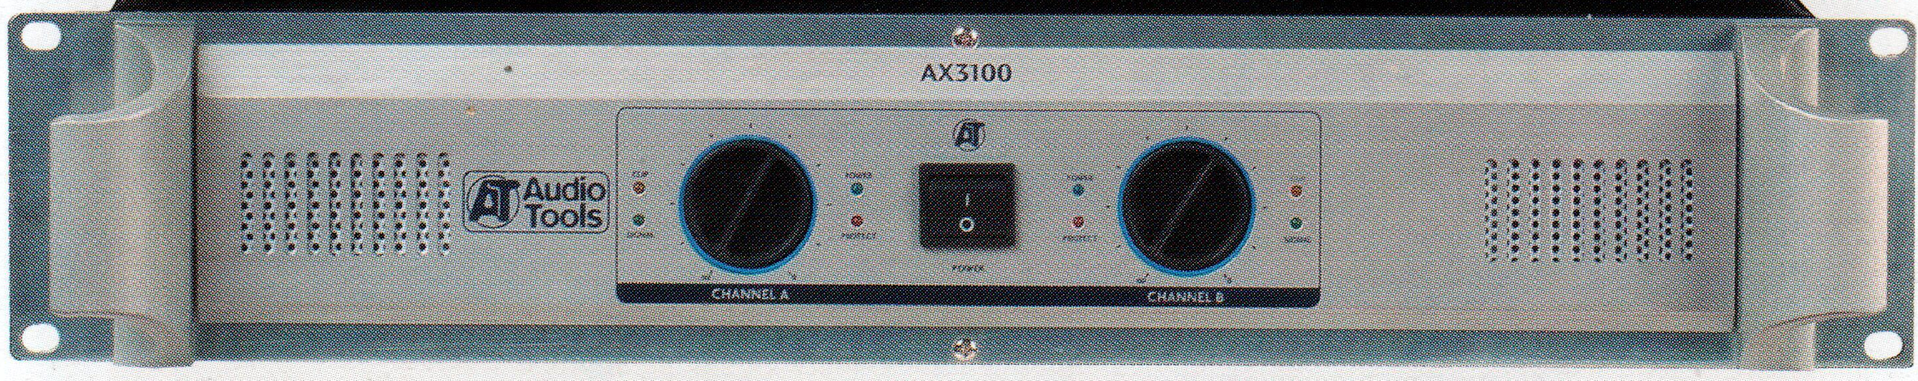 AUDIO TOOLS - AX3100 - AMPLIFICATORE 3100W